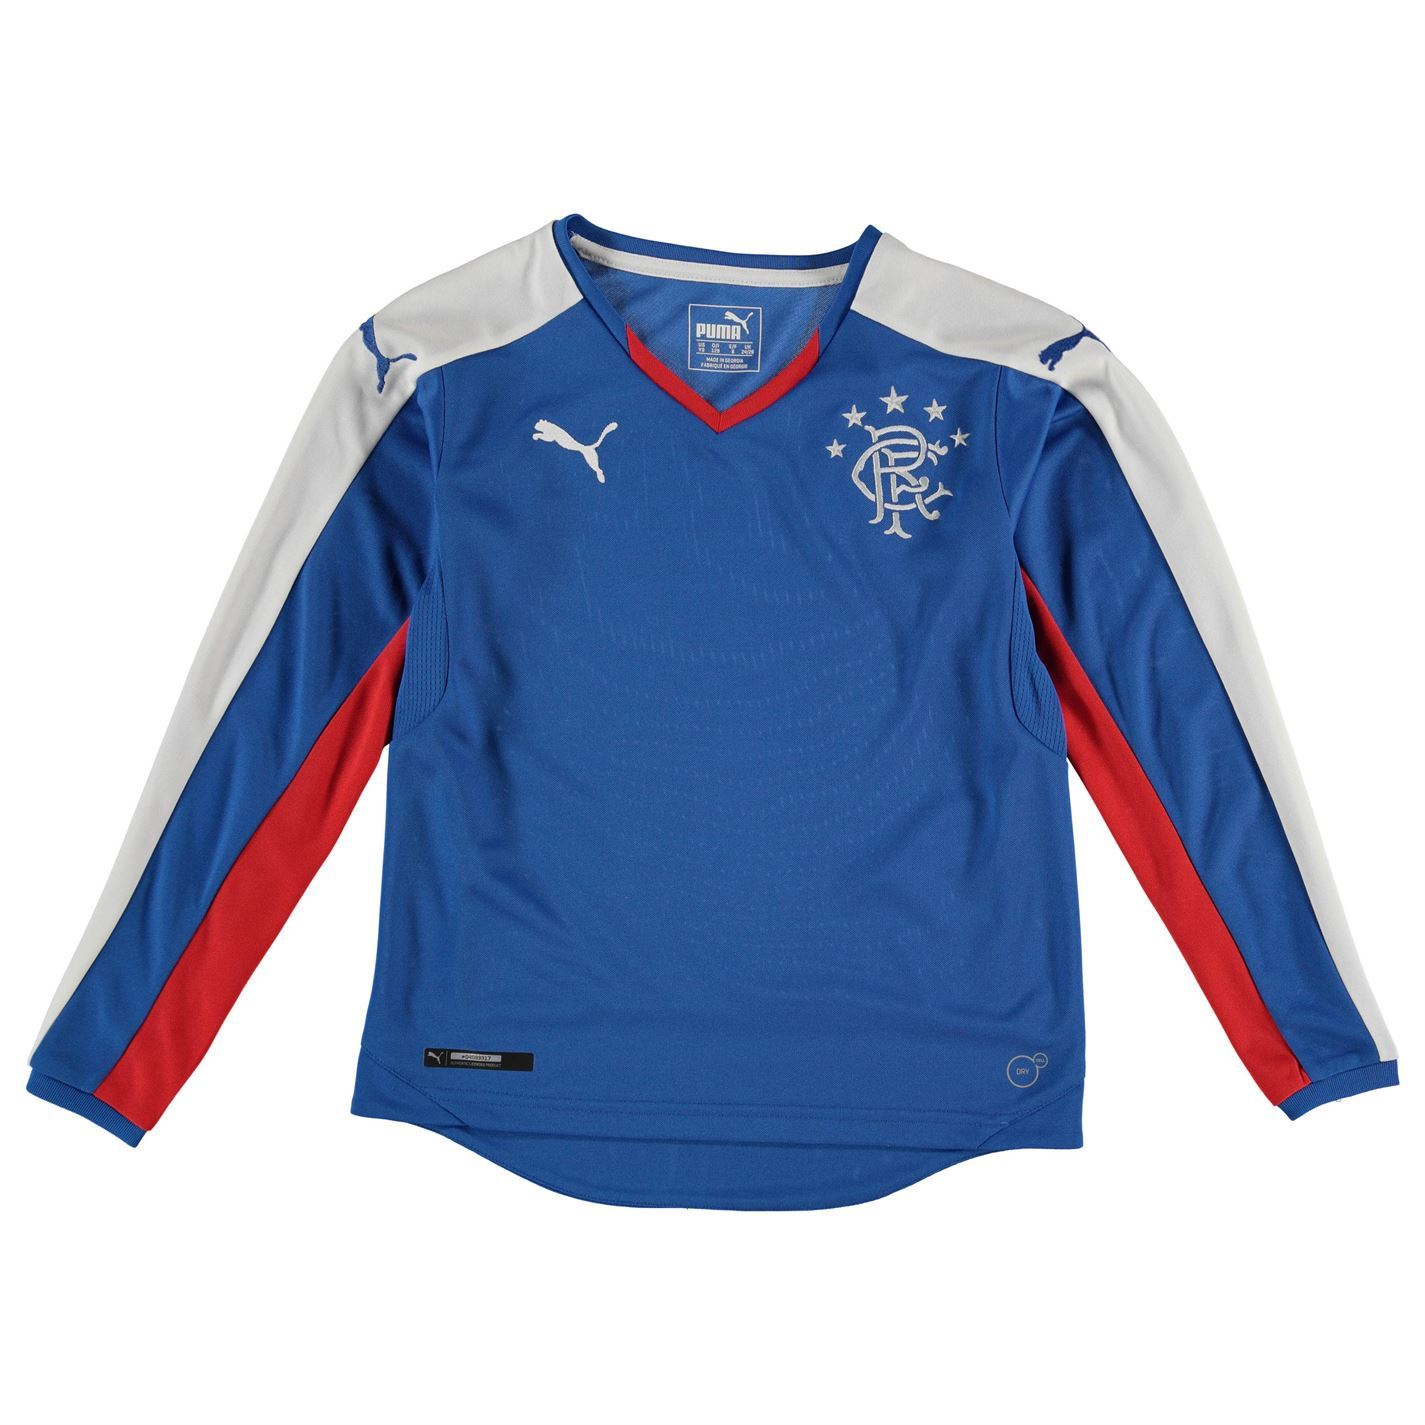 half off 0d613 2d103 Details about Puma Glasgow Rangers Long Sleeve Jersey Juniors Blue/White  Football Soccer Shirt